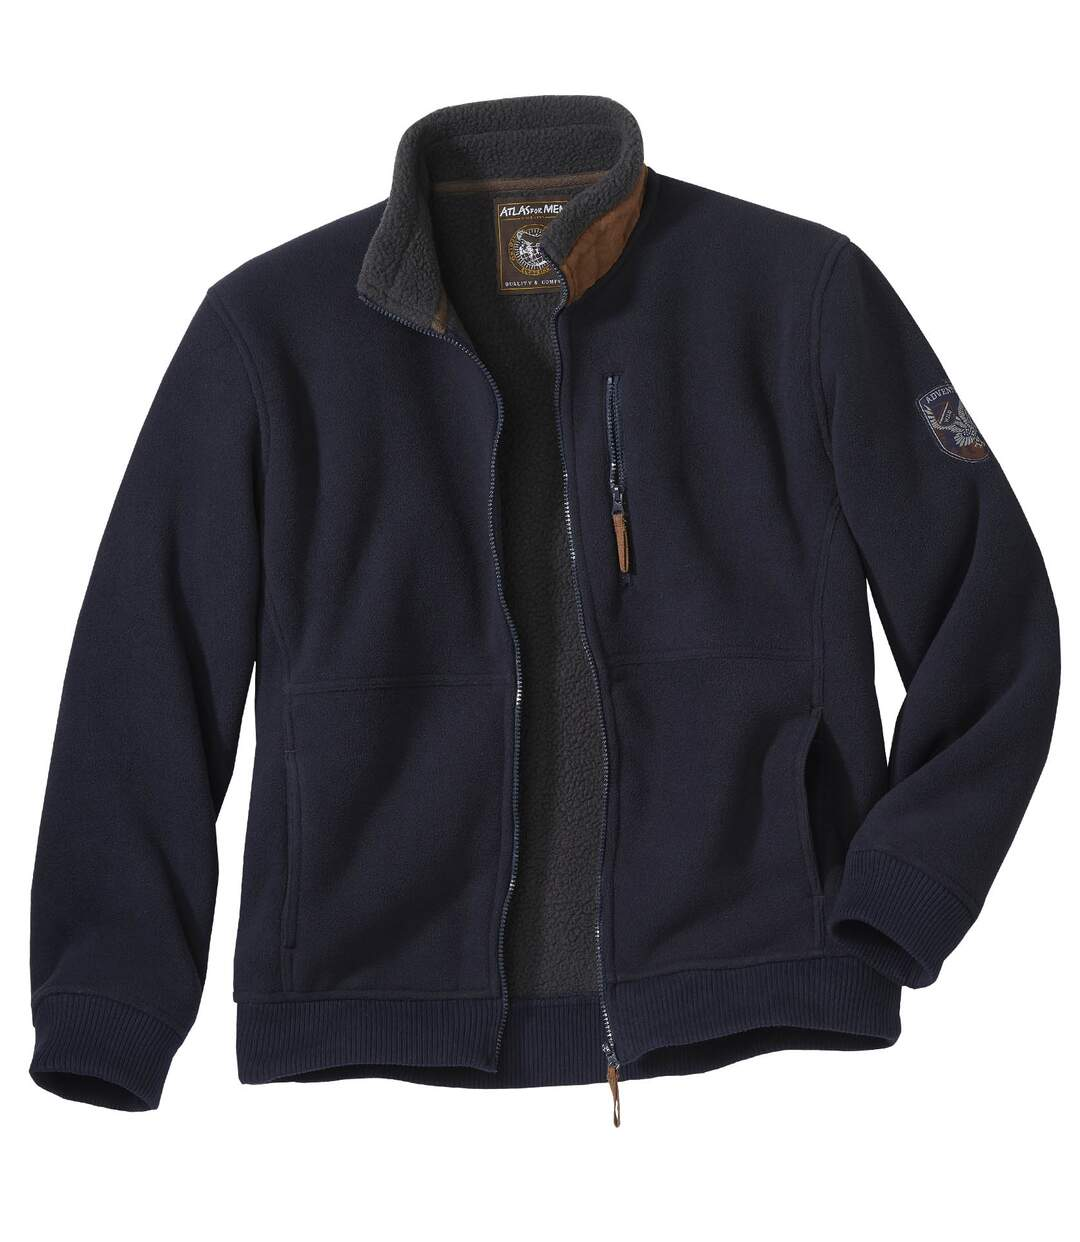 Men's Navy Fleece Jacket with Sherpa Lining - Full Zip